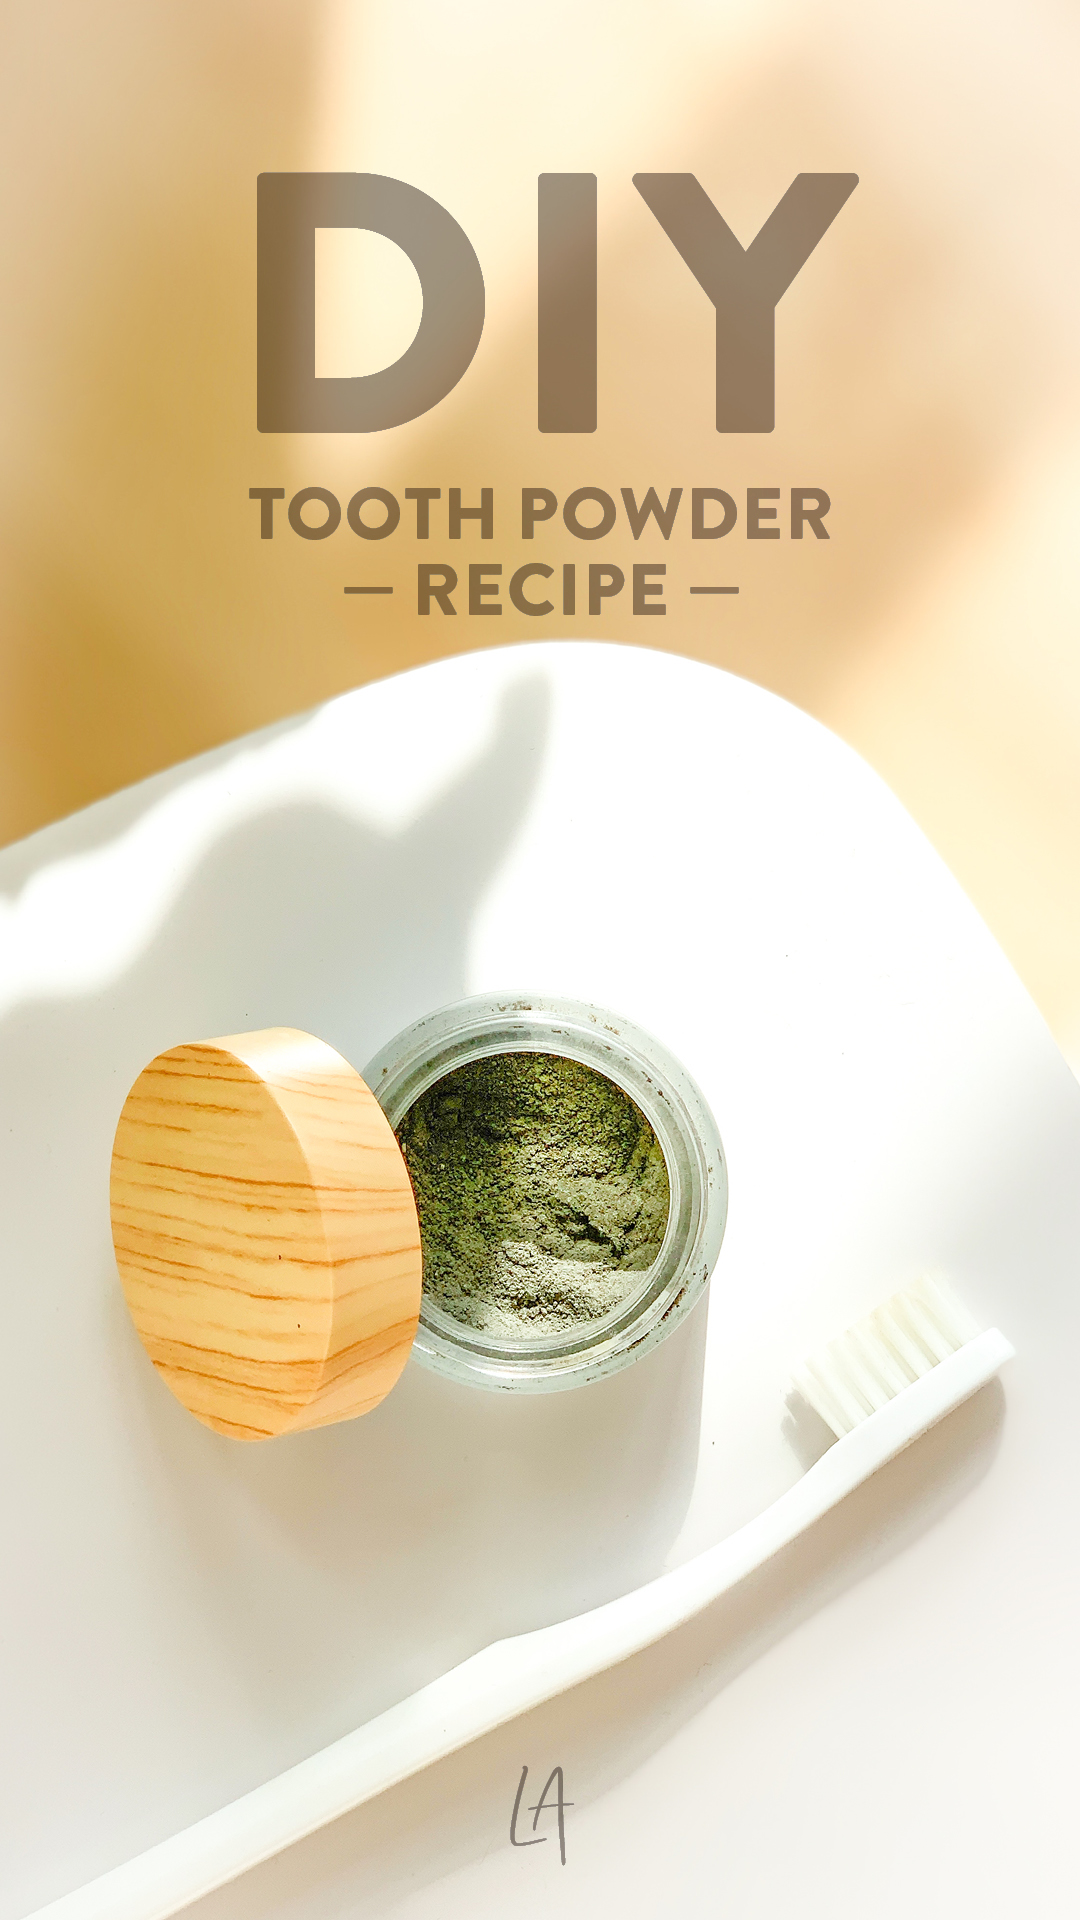 Easy tooth powder recipe